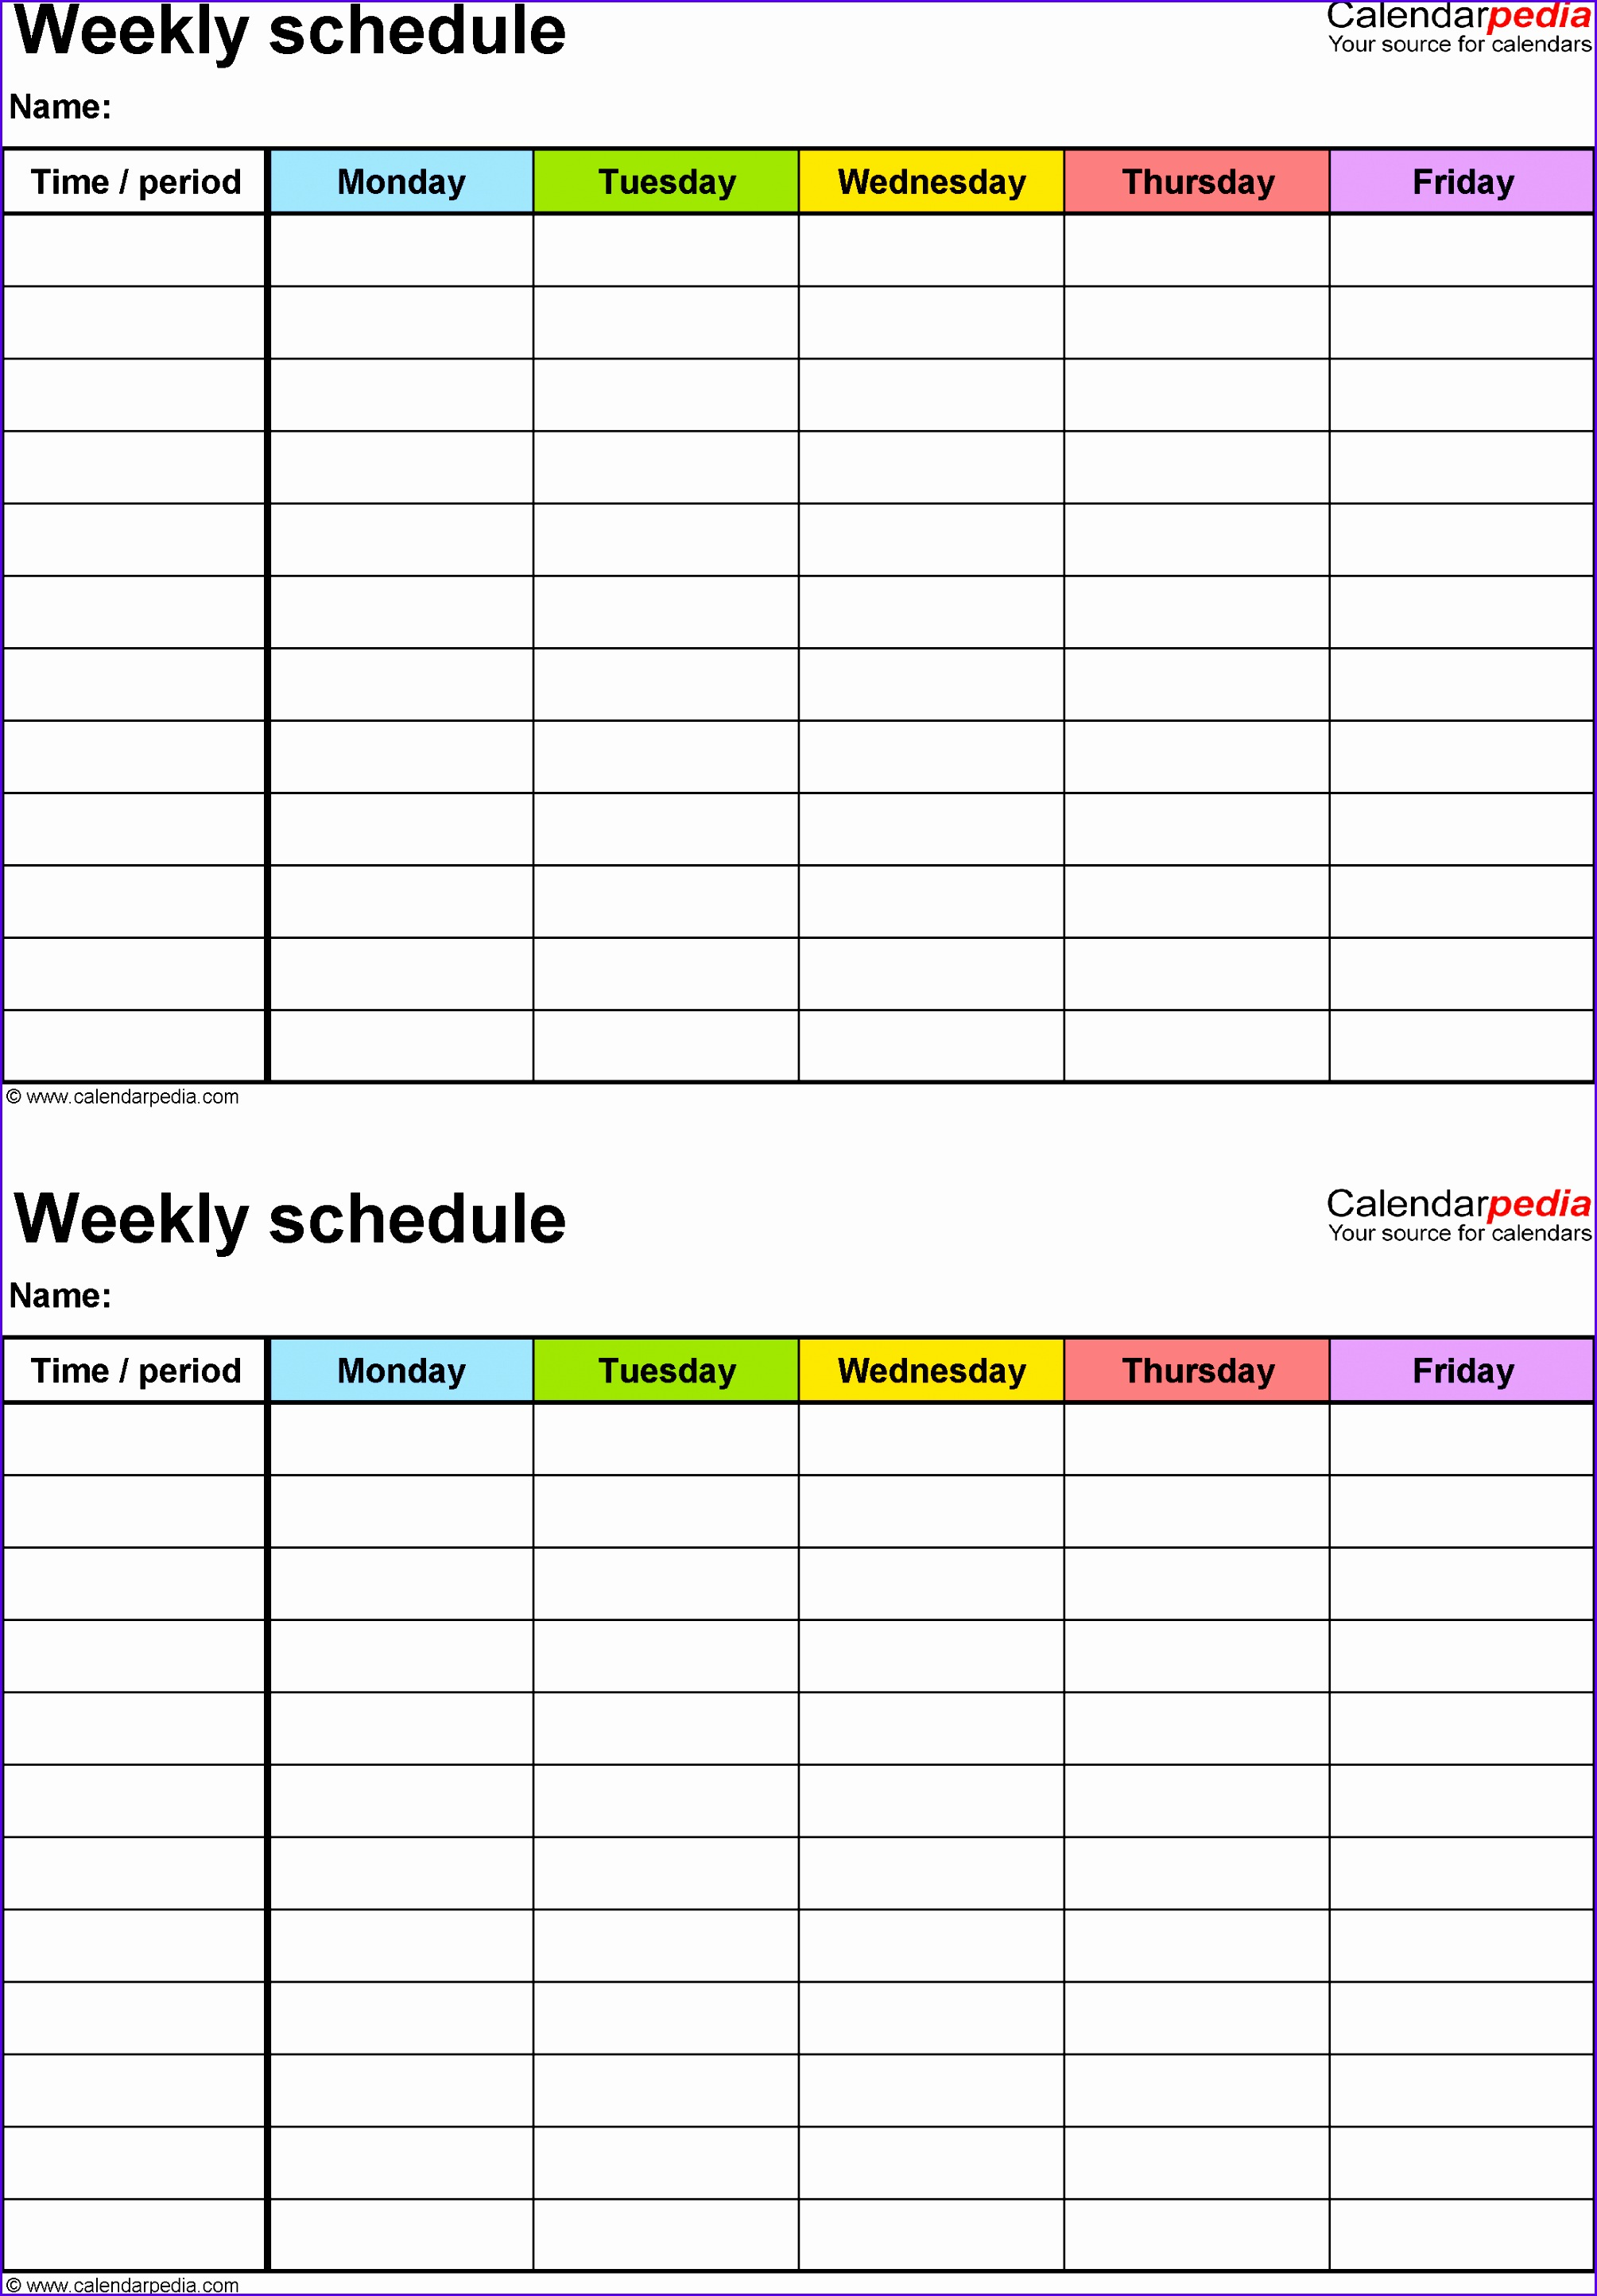 Sample Weekly Planner Template Excel Fyng5 Elegant Free Weekly Schedule Templates for Pdf 18 Templates 22083140